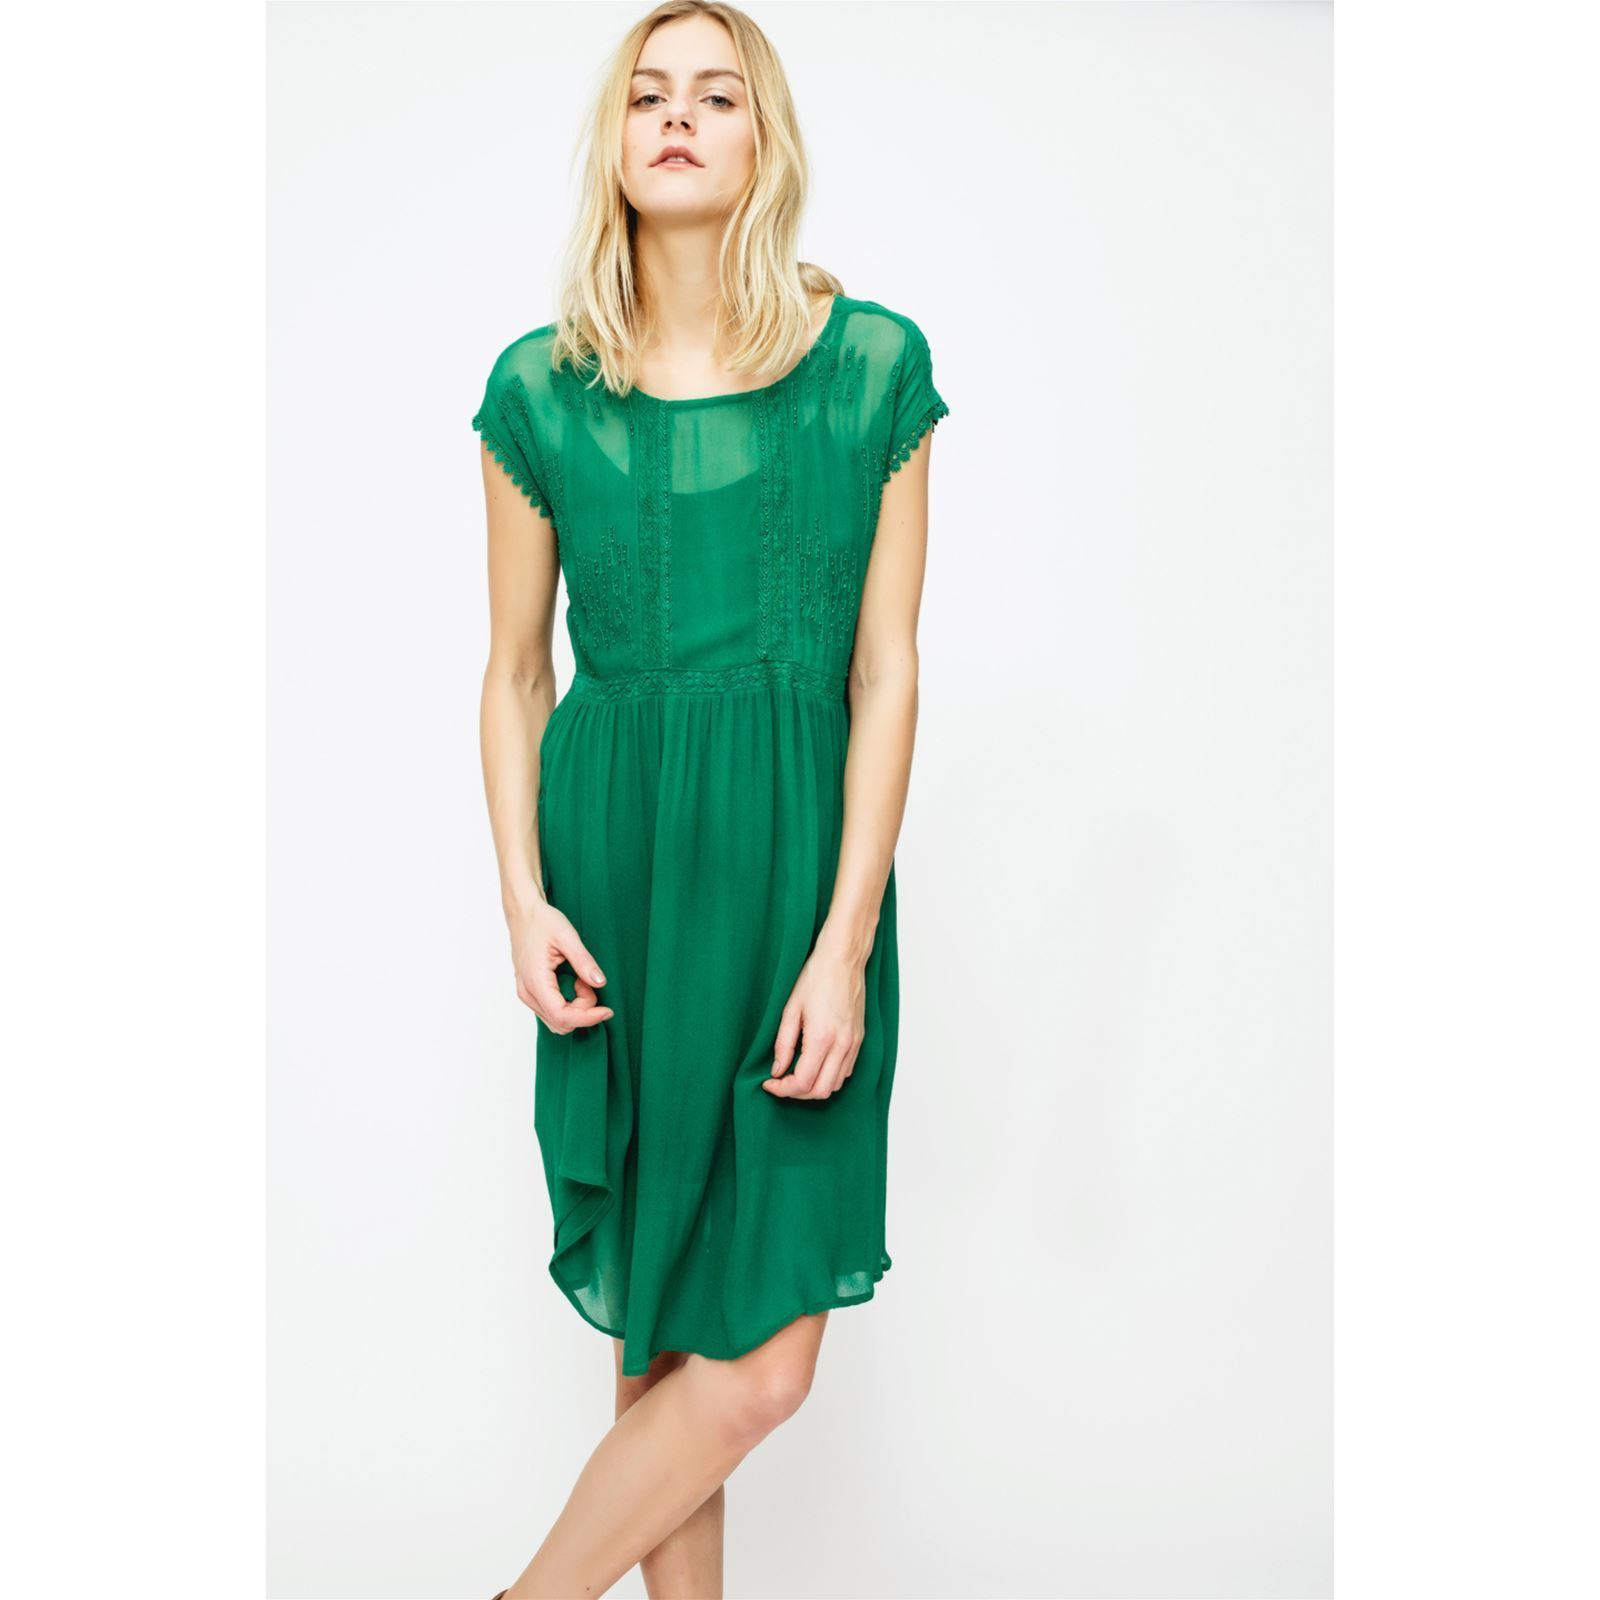 Sin quanone angele robe vert brandalley for Robes vertes pour les mariages